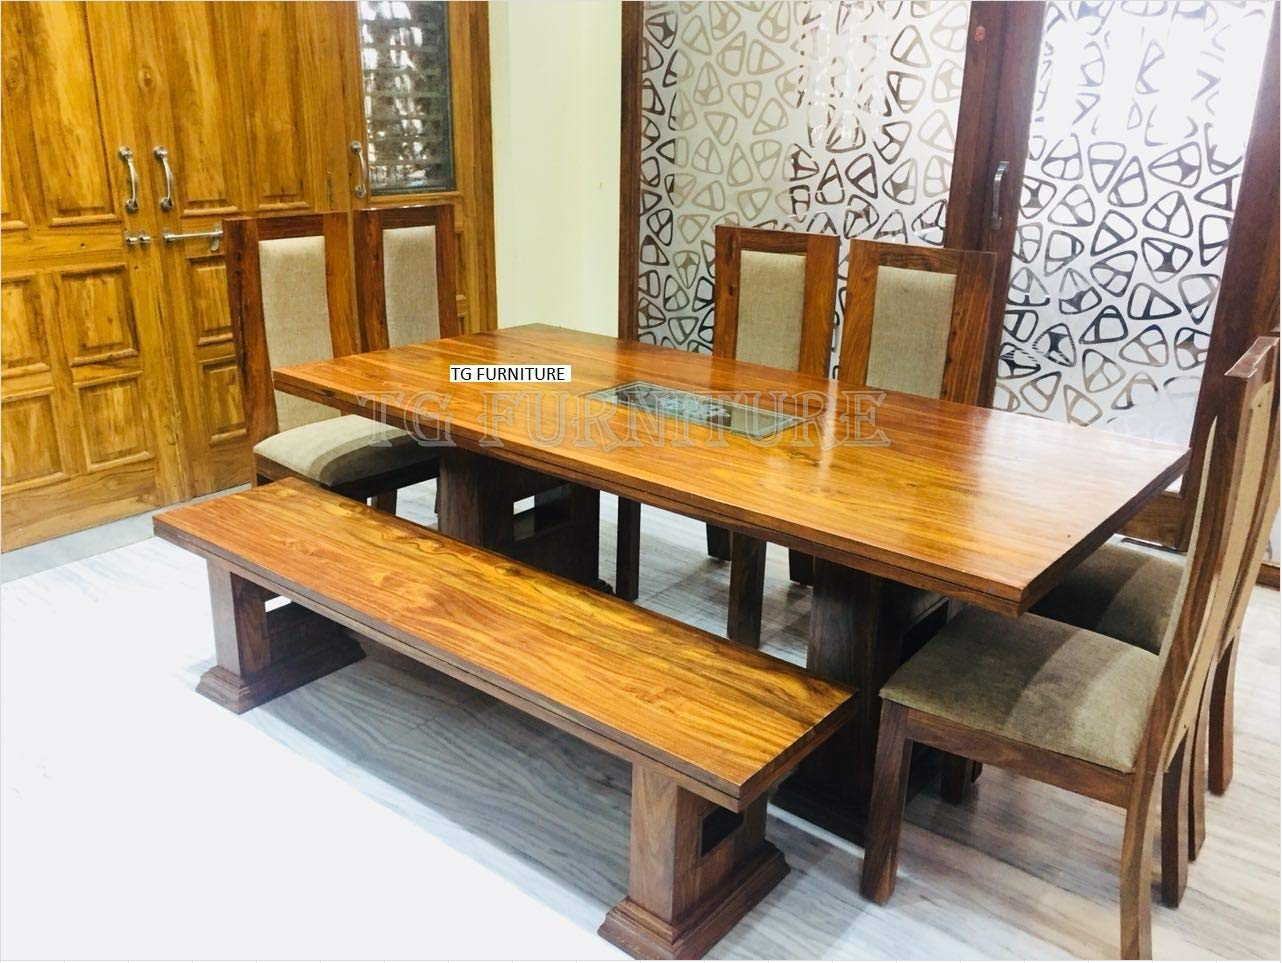 Tg furniture rosewood dining table set 6 seater with bench big size amazon in home kitchen